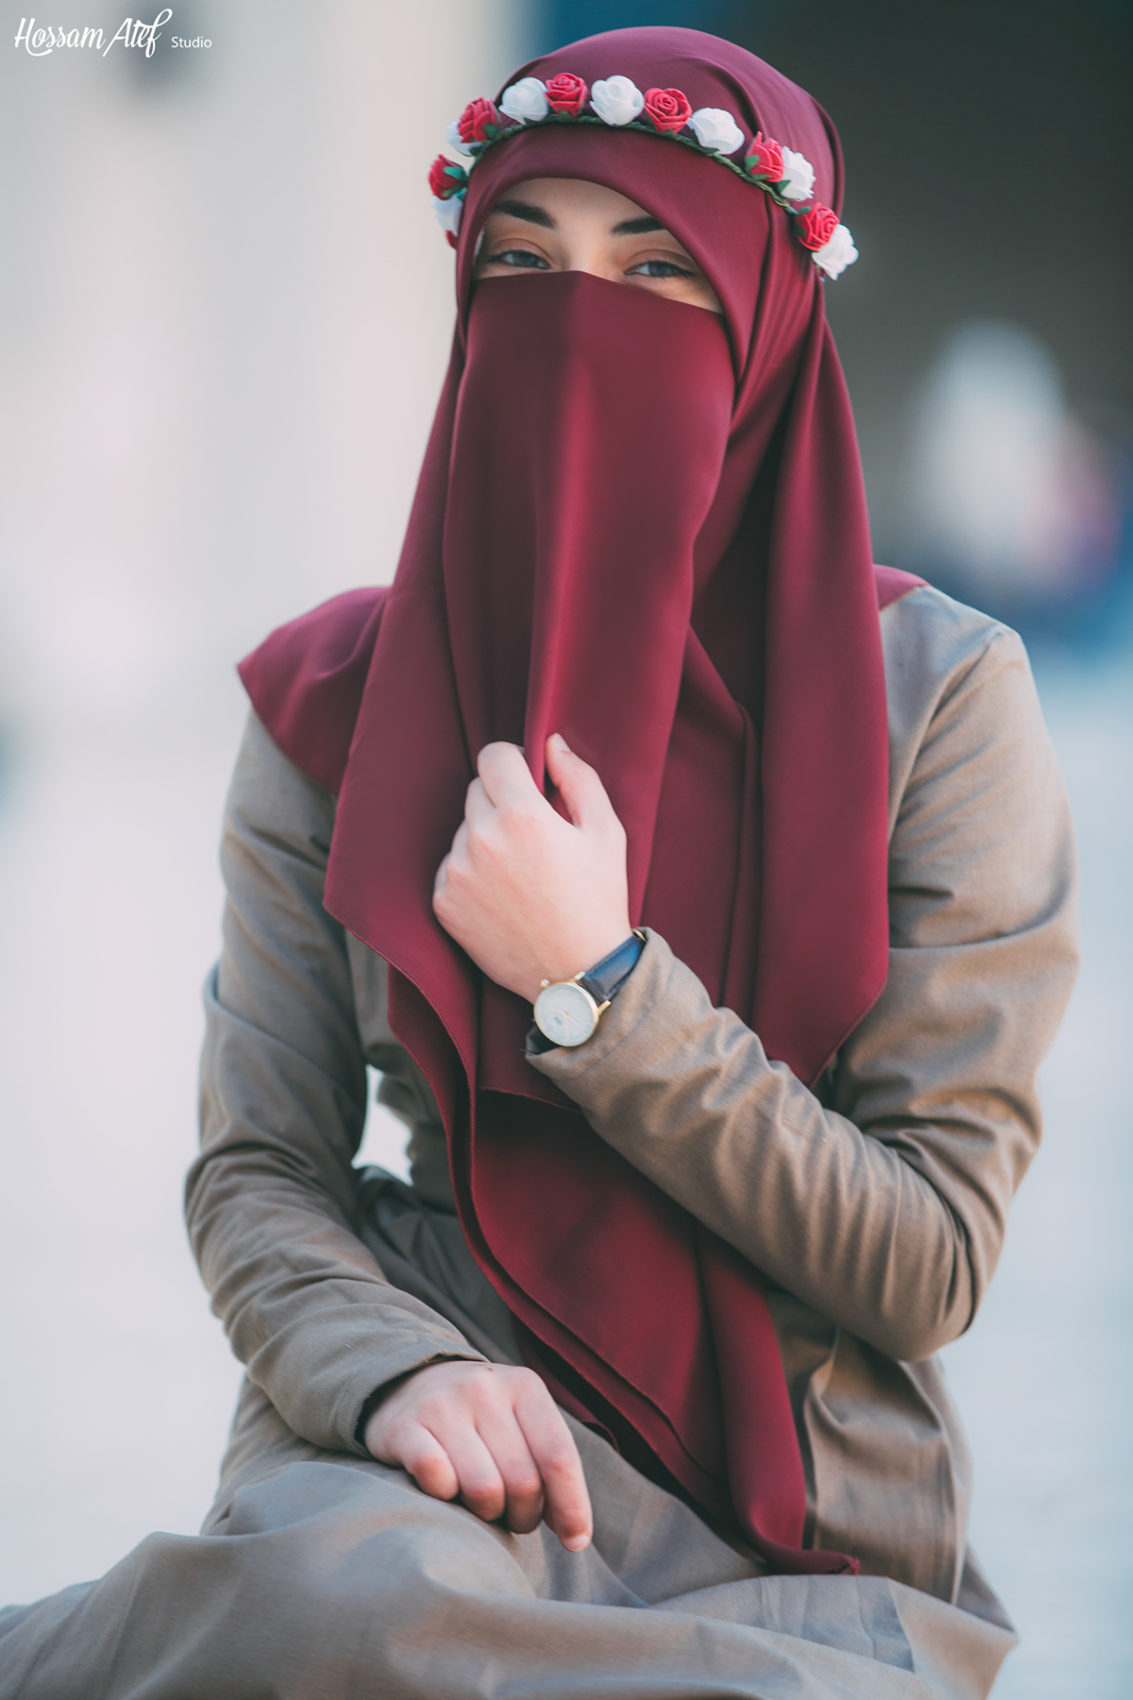 zelienople single muslim girls Life after 30 as a single muslim woman  the reality is that there are more single muslim women than males, and you should look for a guy who is loving and kind.